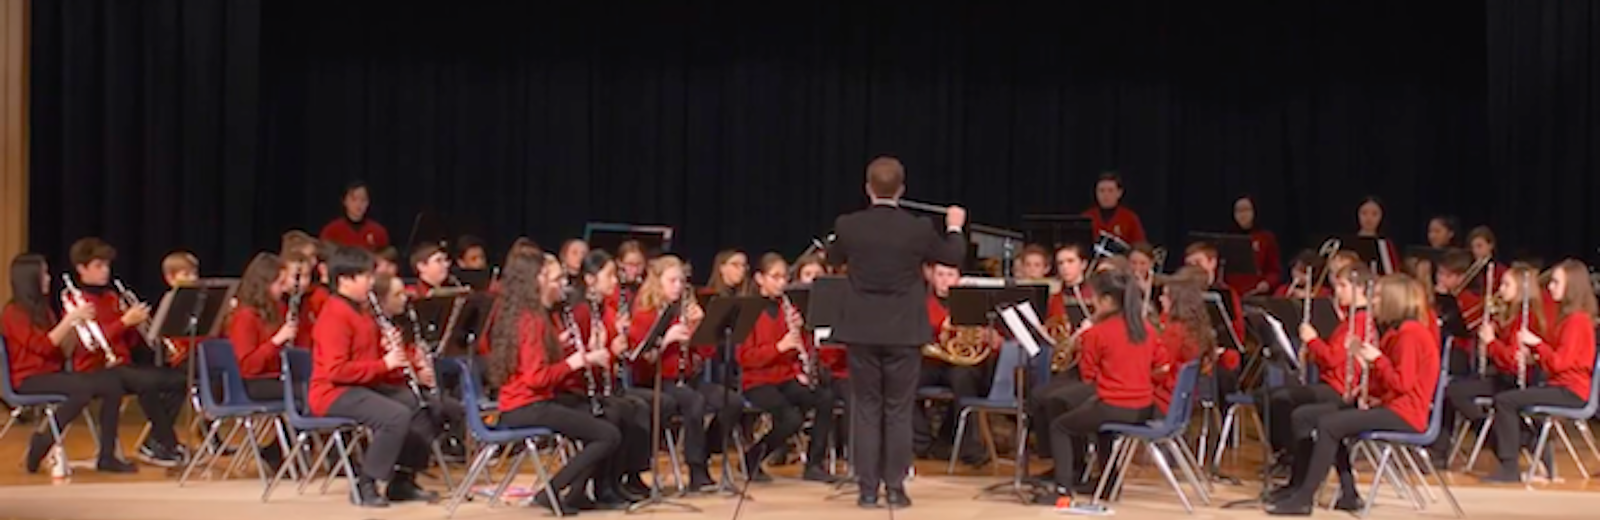 Pearson Concert Band at the Kiwanis Showcase Concert 2018